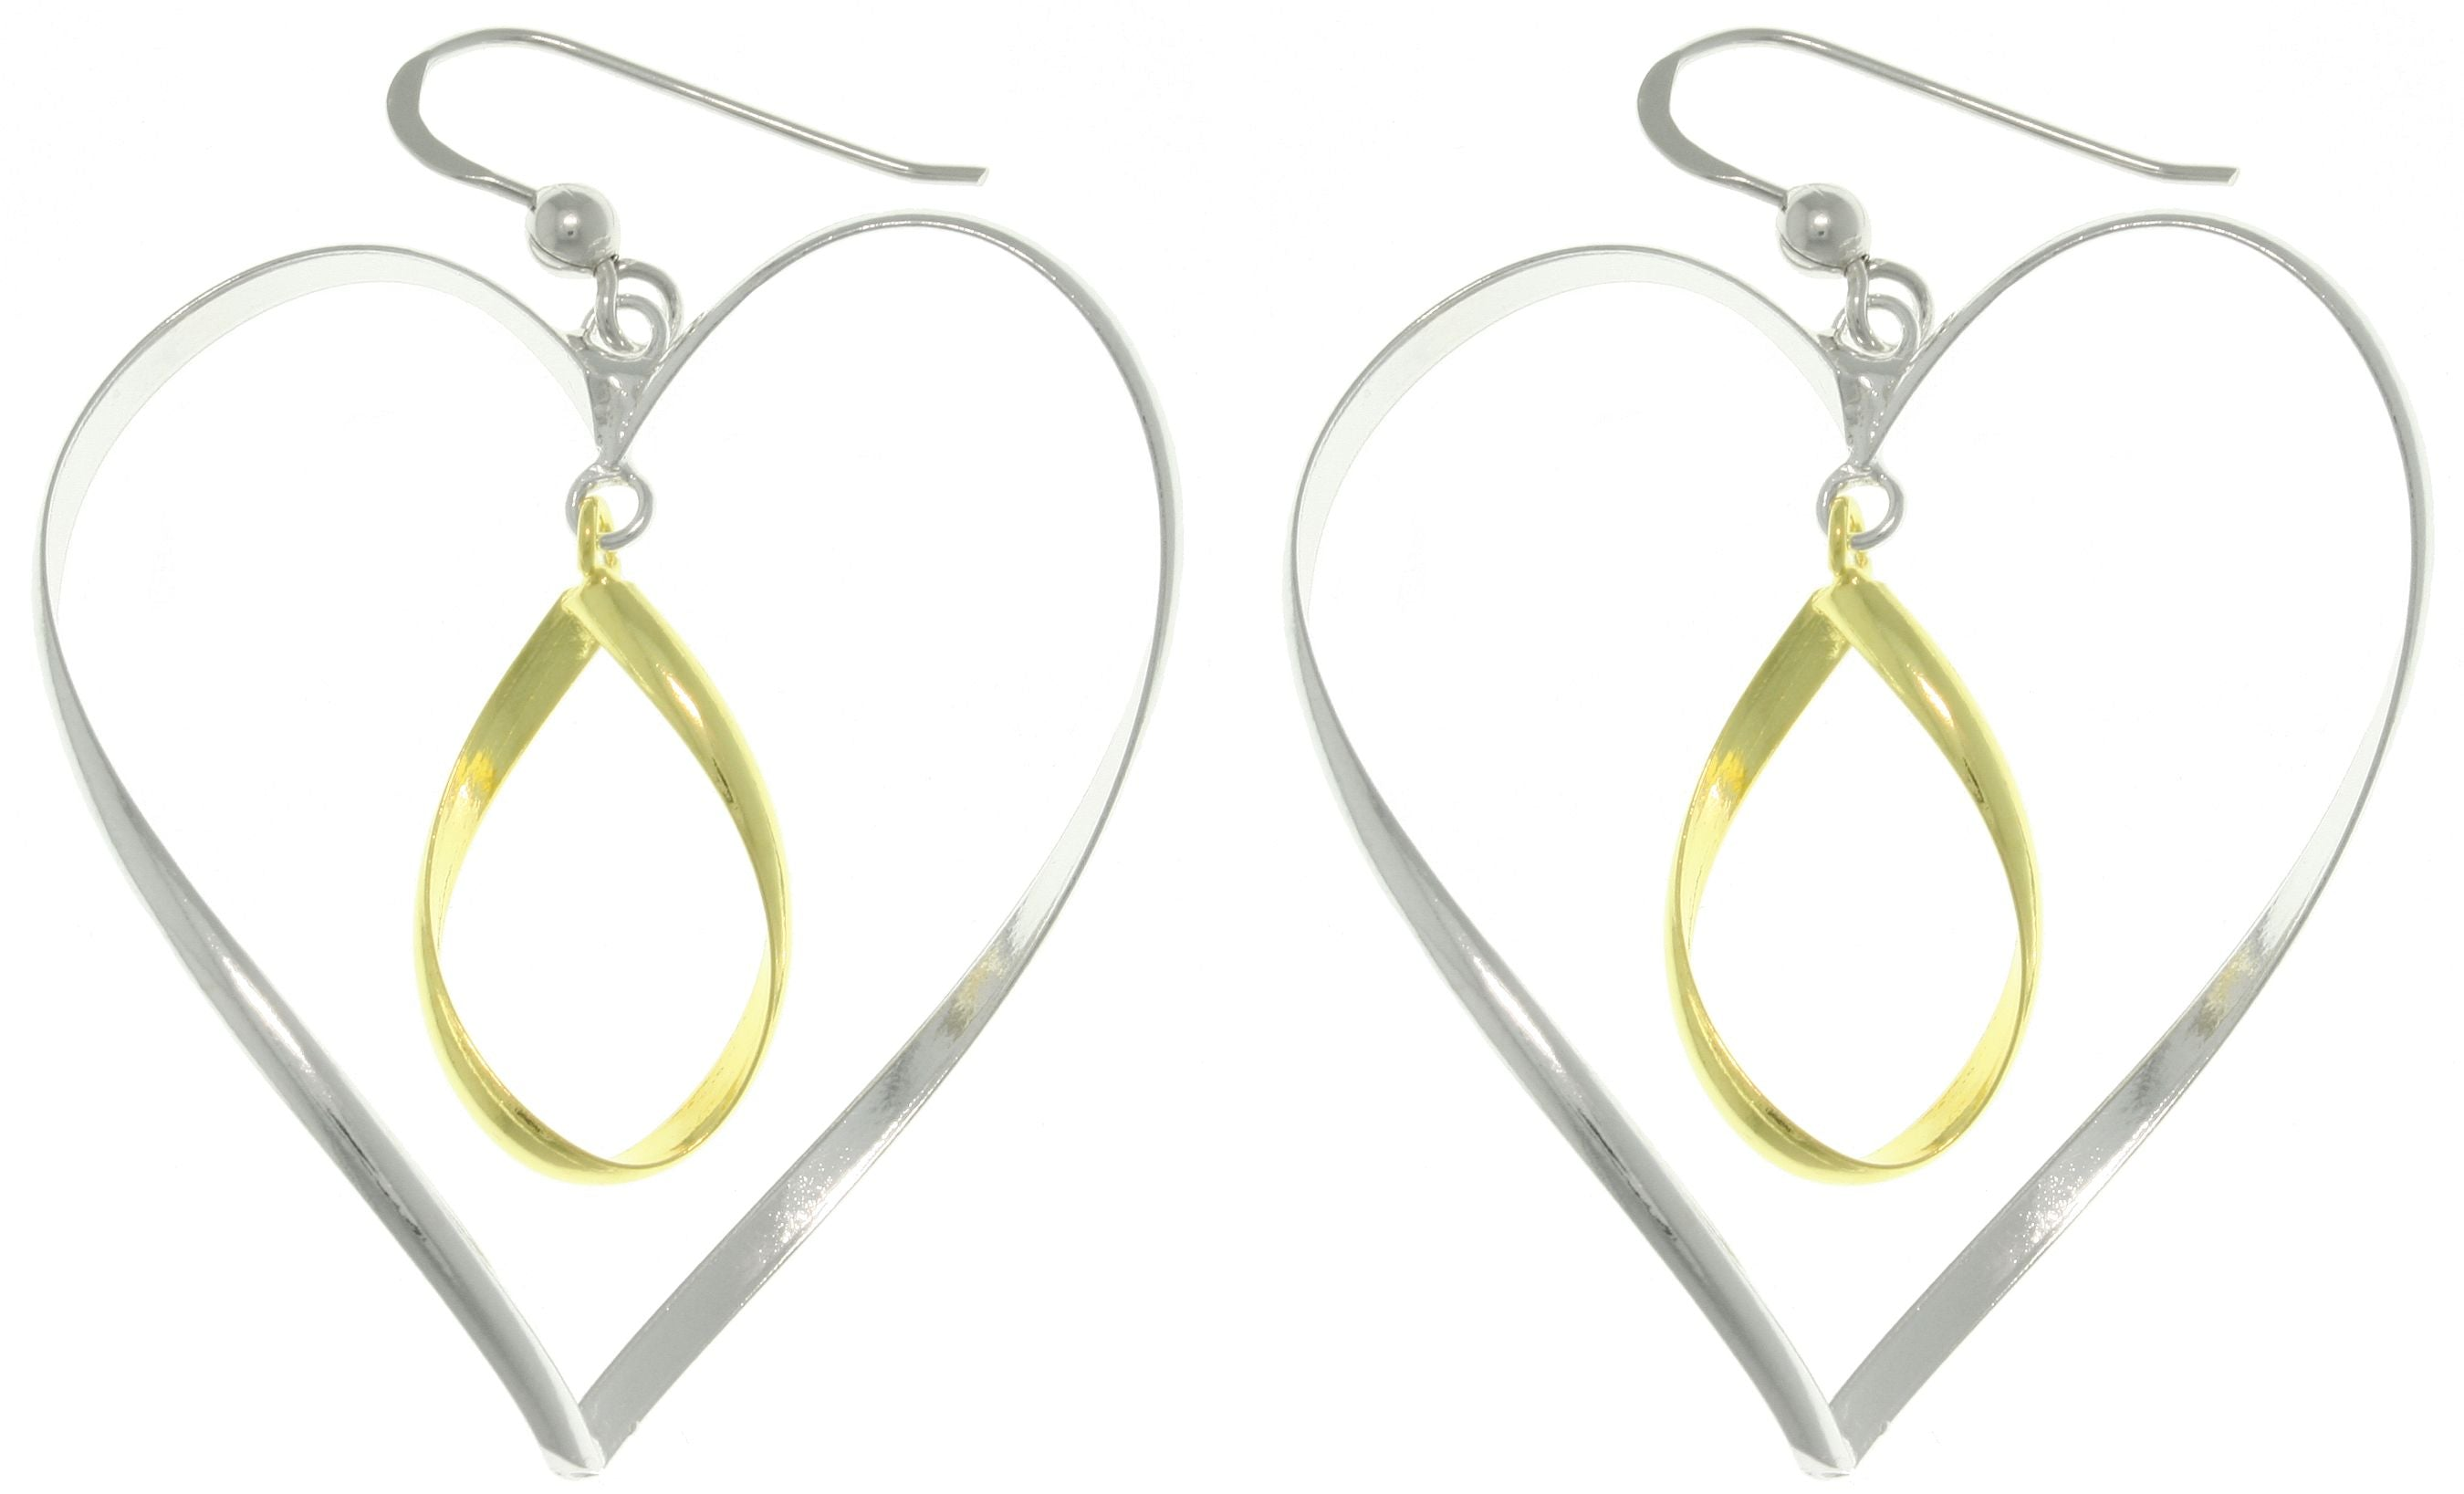 Jewelry Trends 14k Gold Over Silver Heart and Oval Earrings